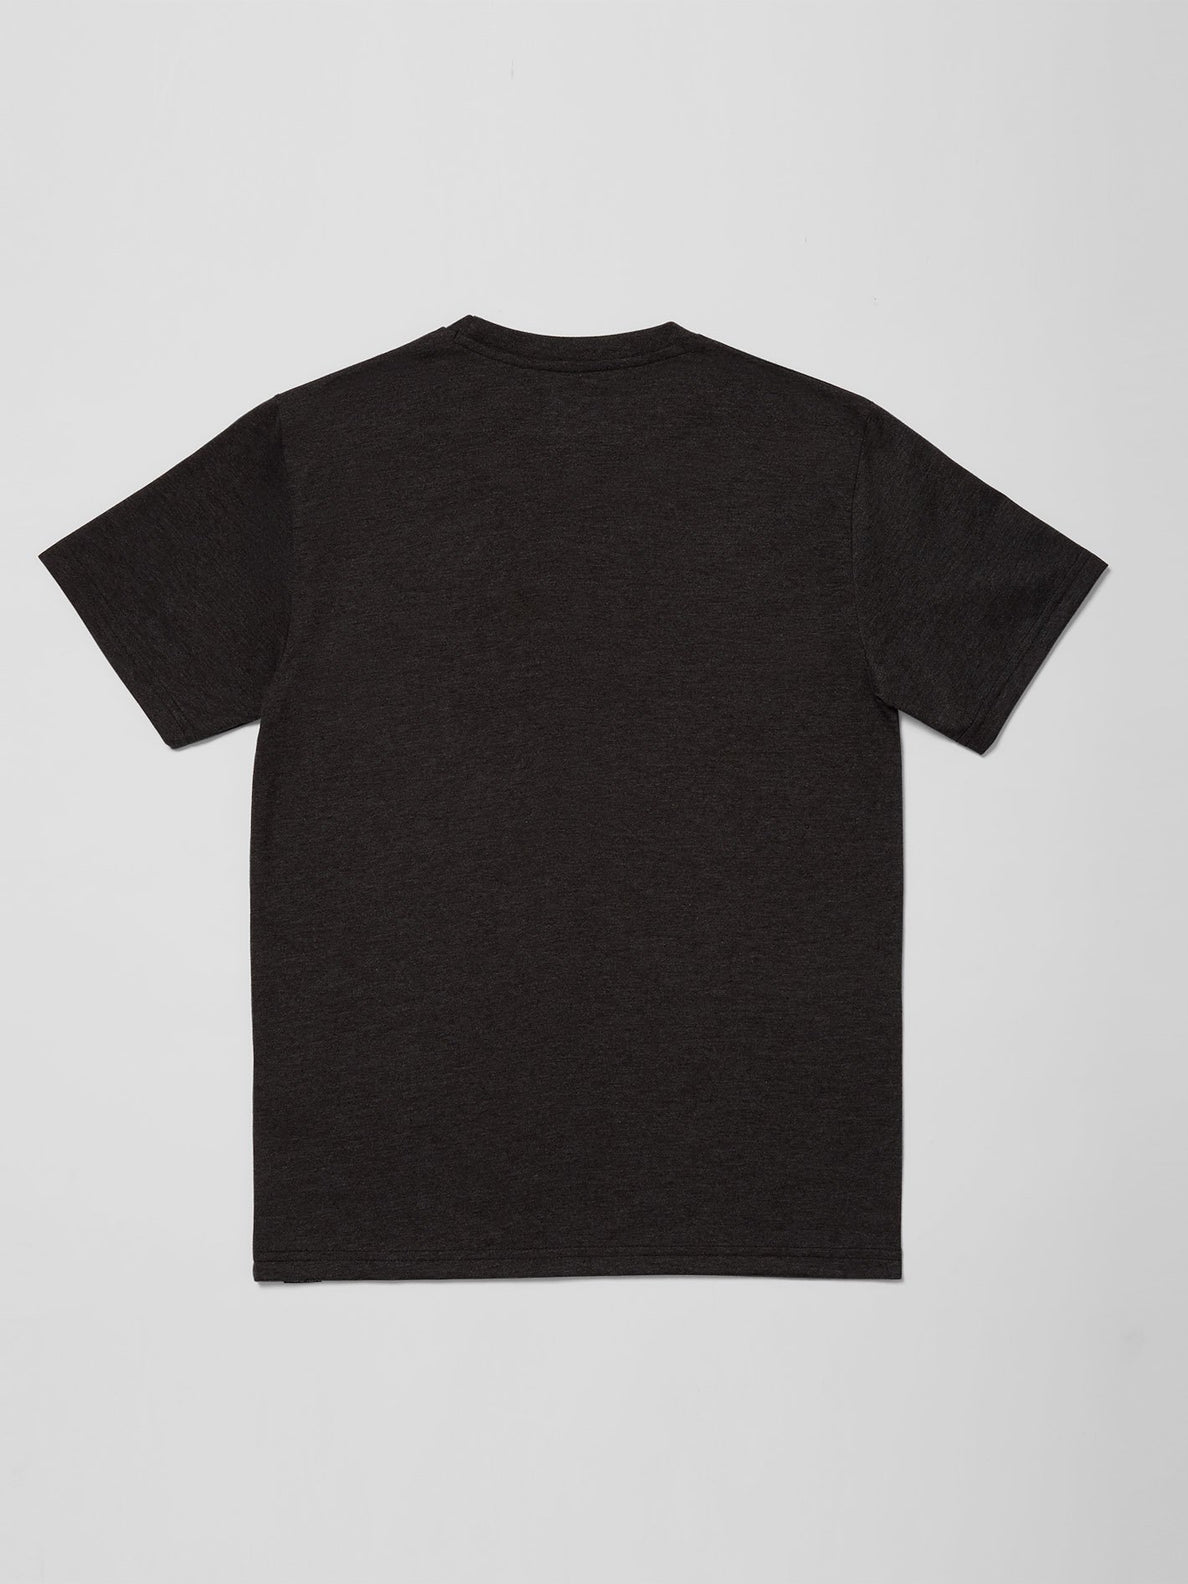 Big Blot T-shirt - Heather Black (C5712111_HBK) [B]